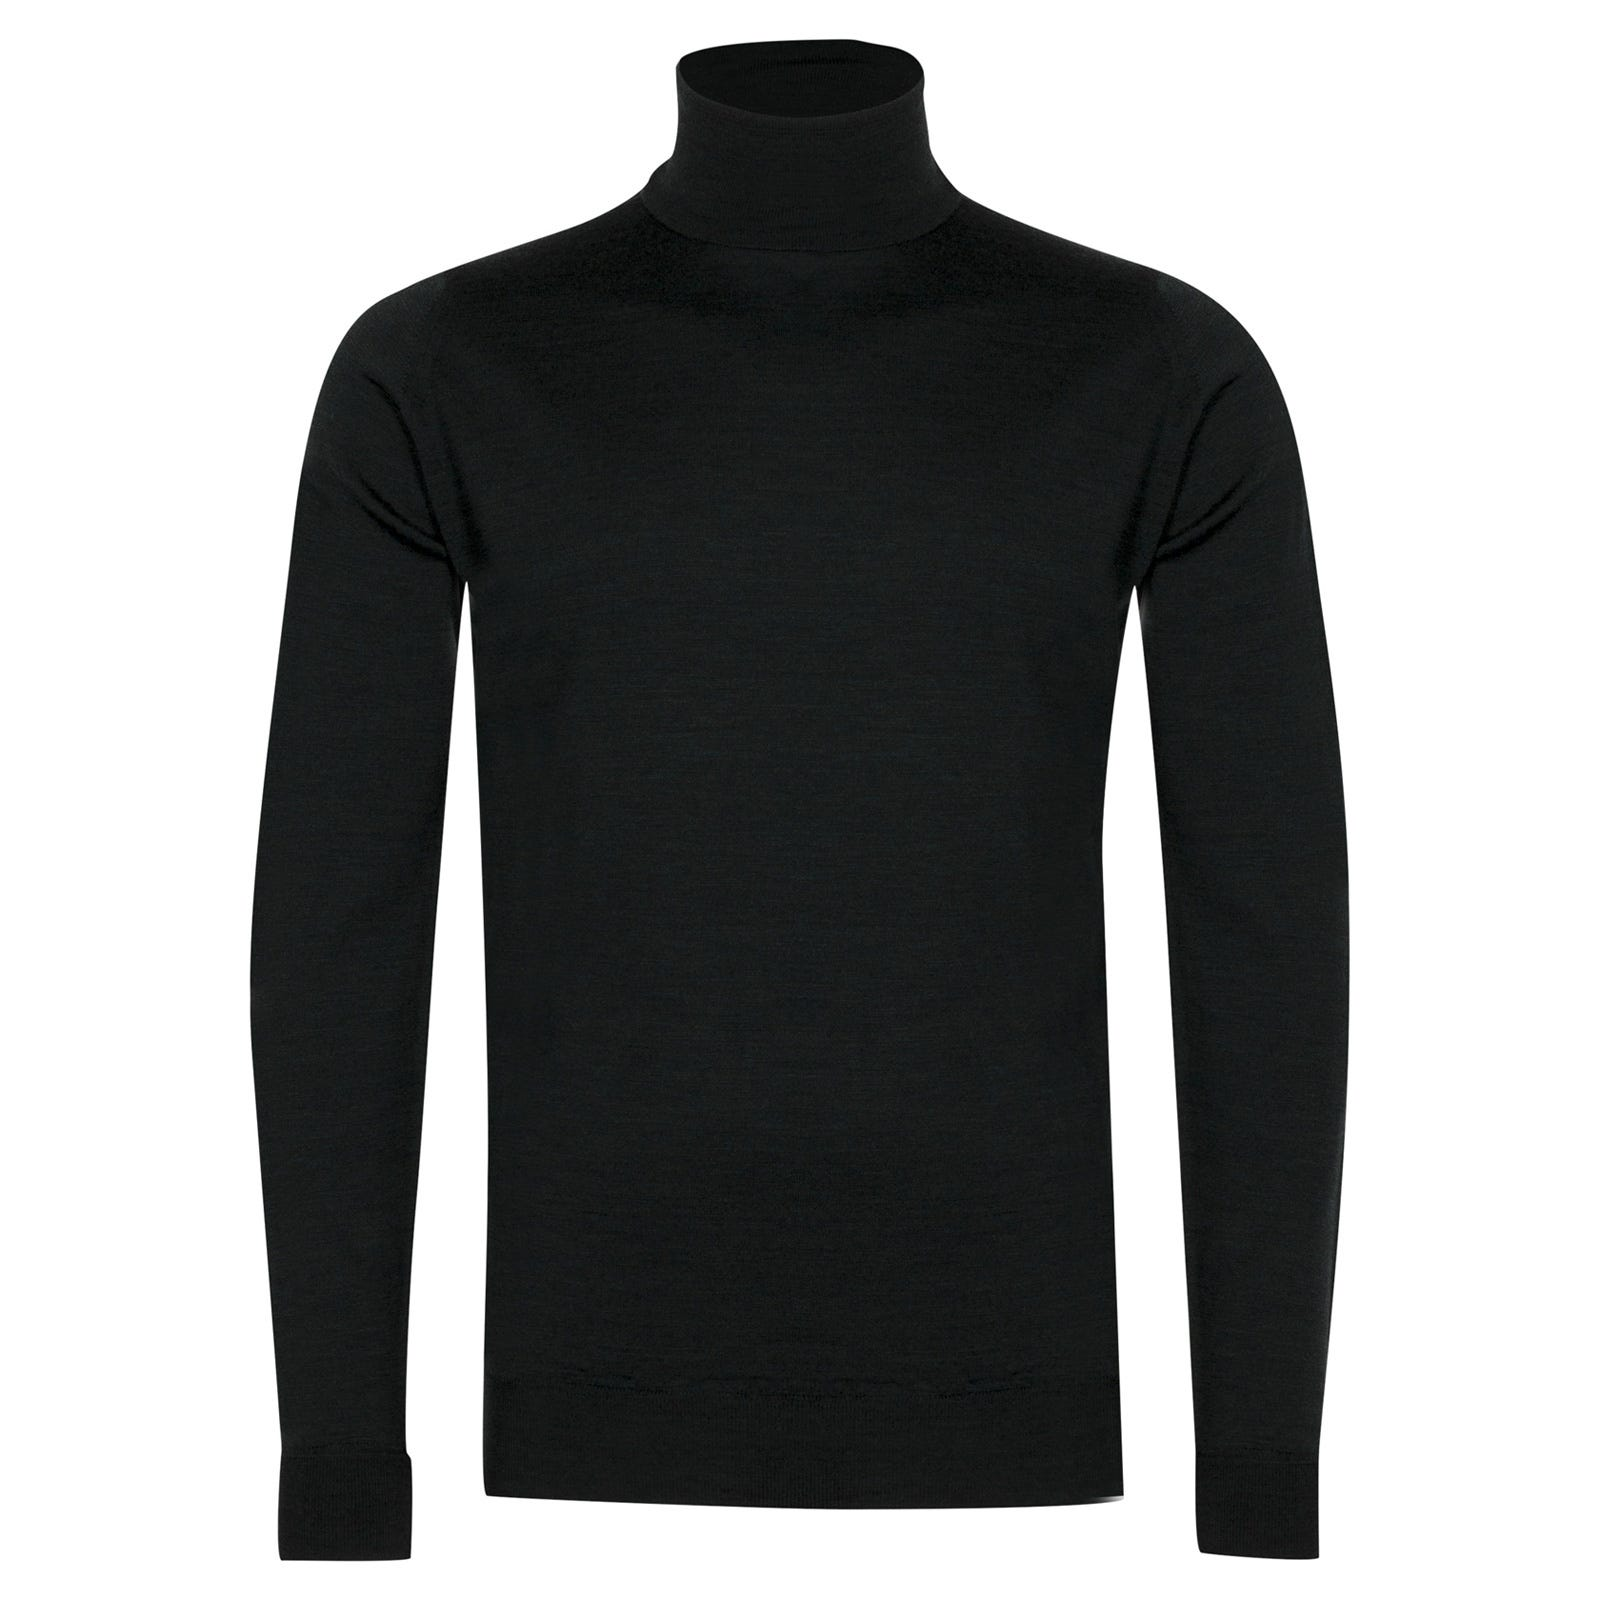 John Smedley richards Merino Wool Pullover in Racing Green-M